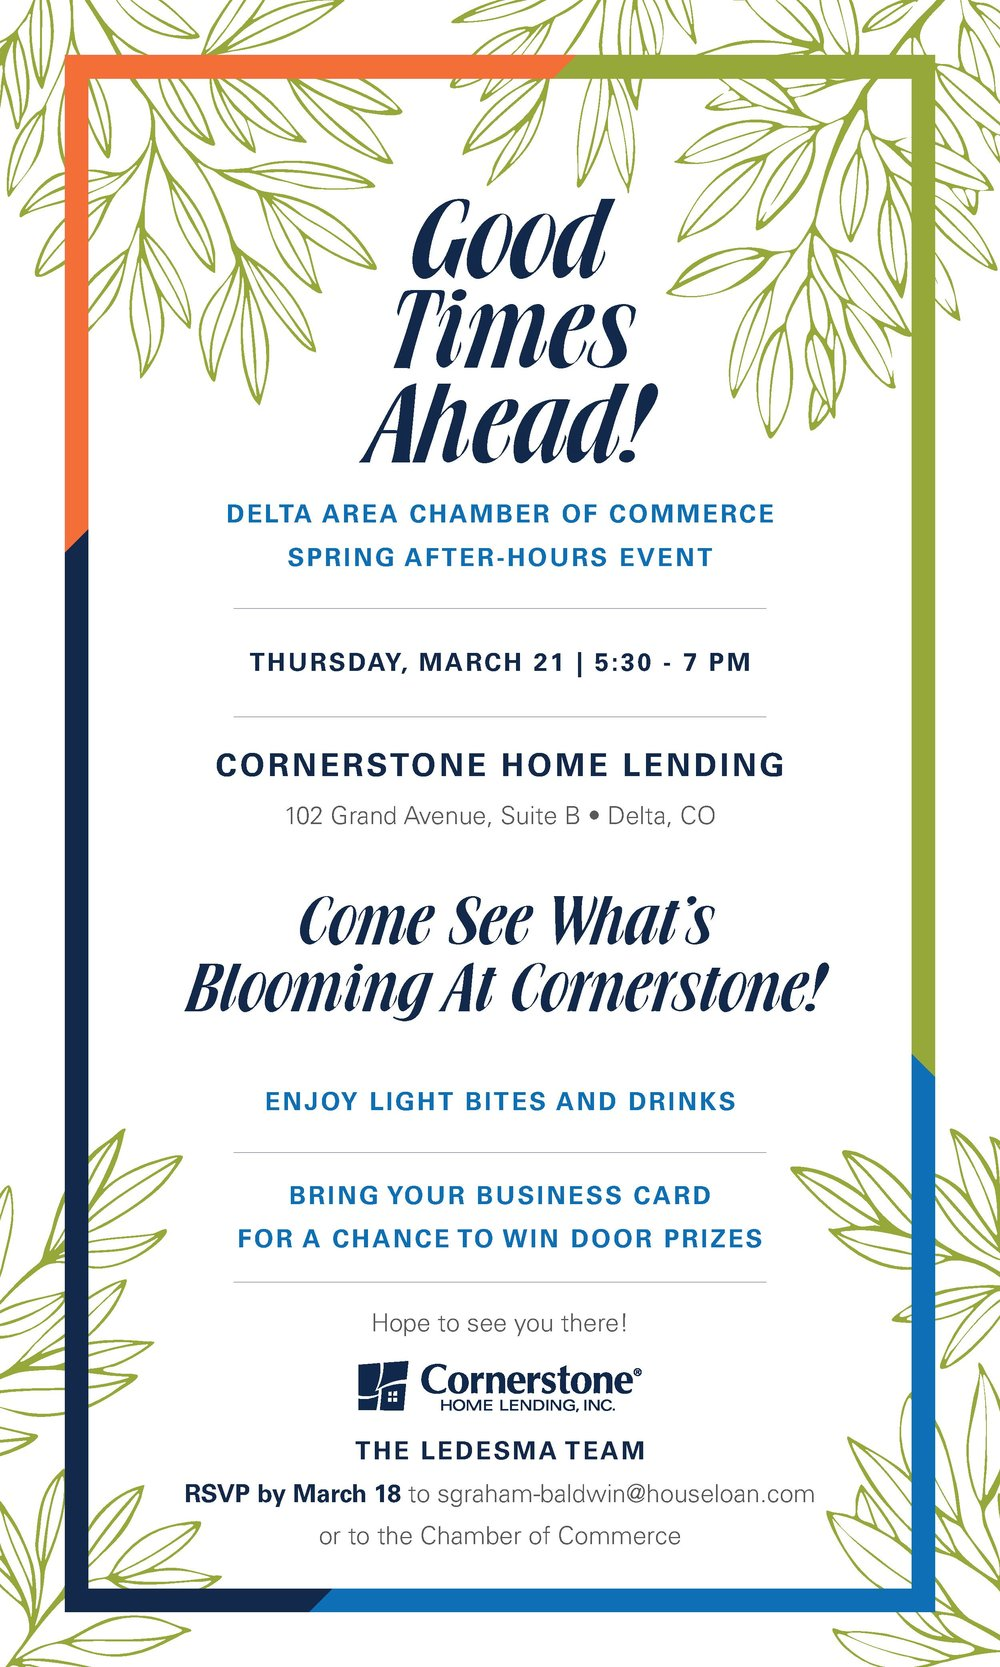 CL_ChamberAfterHours_Spring 2019_Invite_Email.jpg